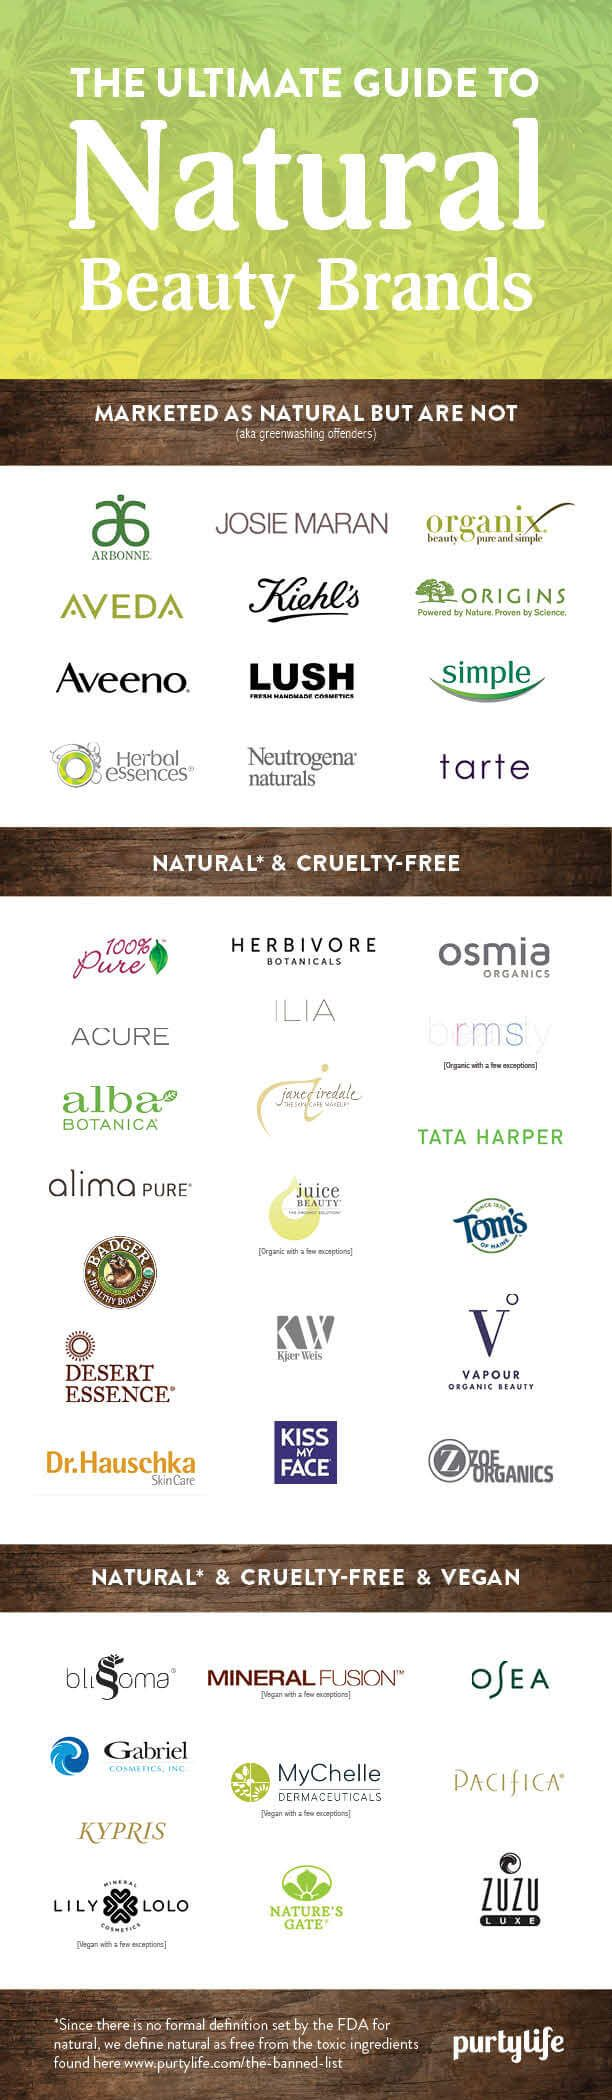 The Ultimate Guide to the Natural, Organic and Vegan Beauty Brands | Discover No...